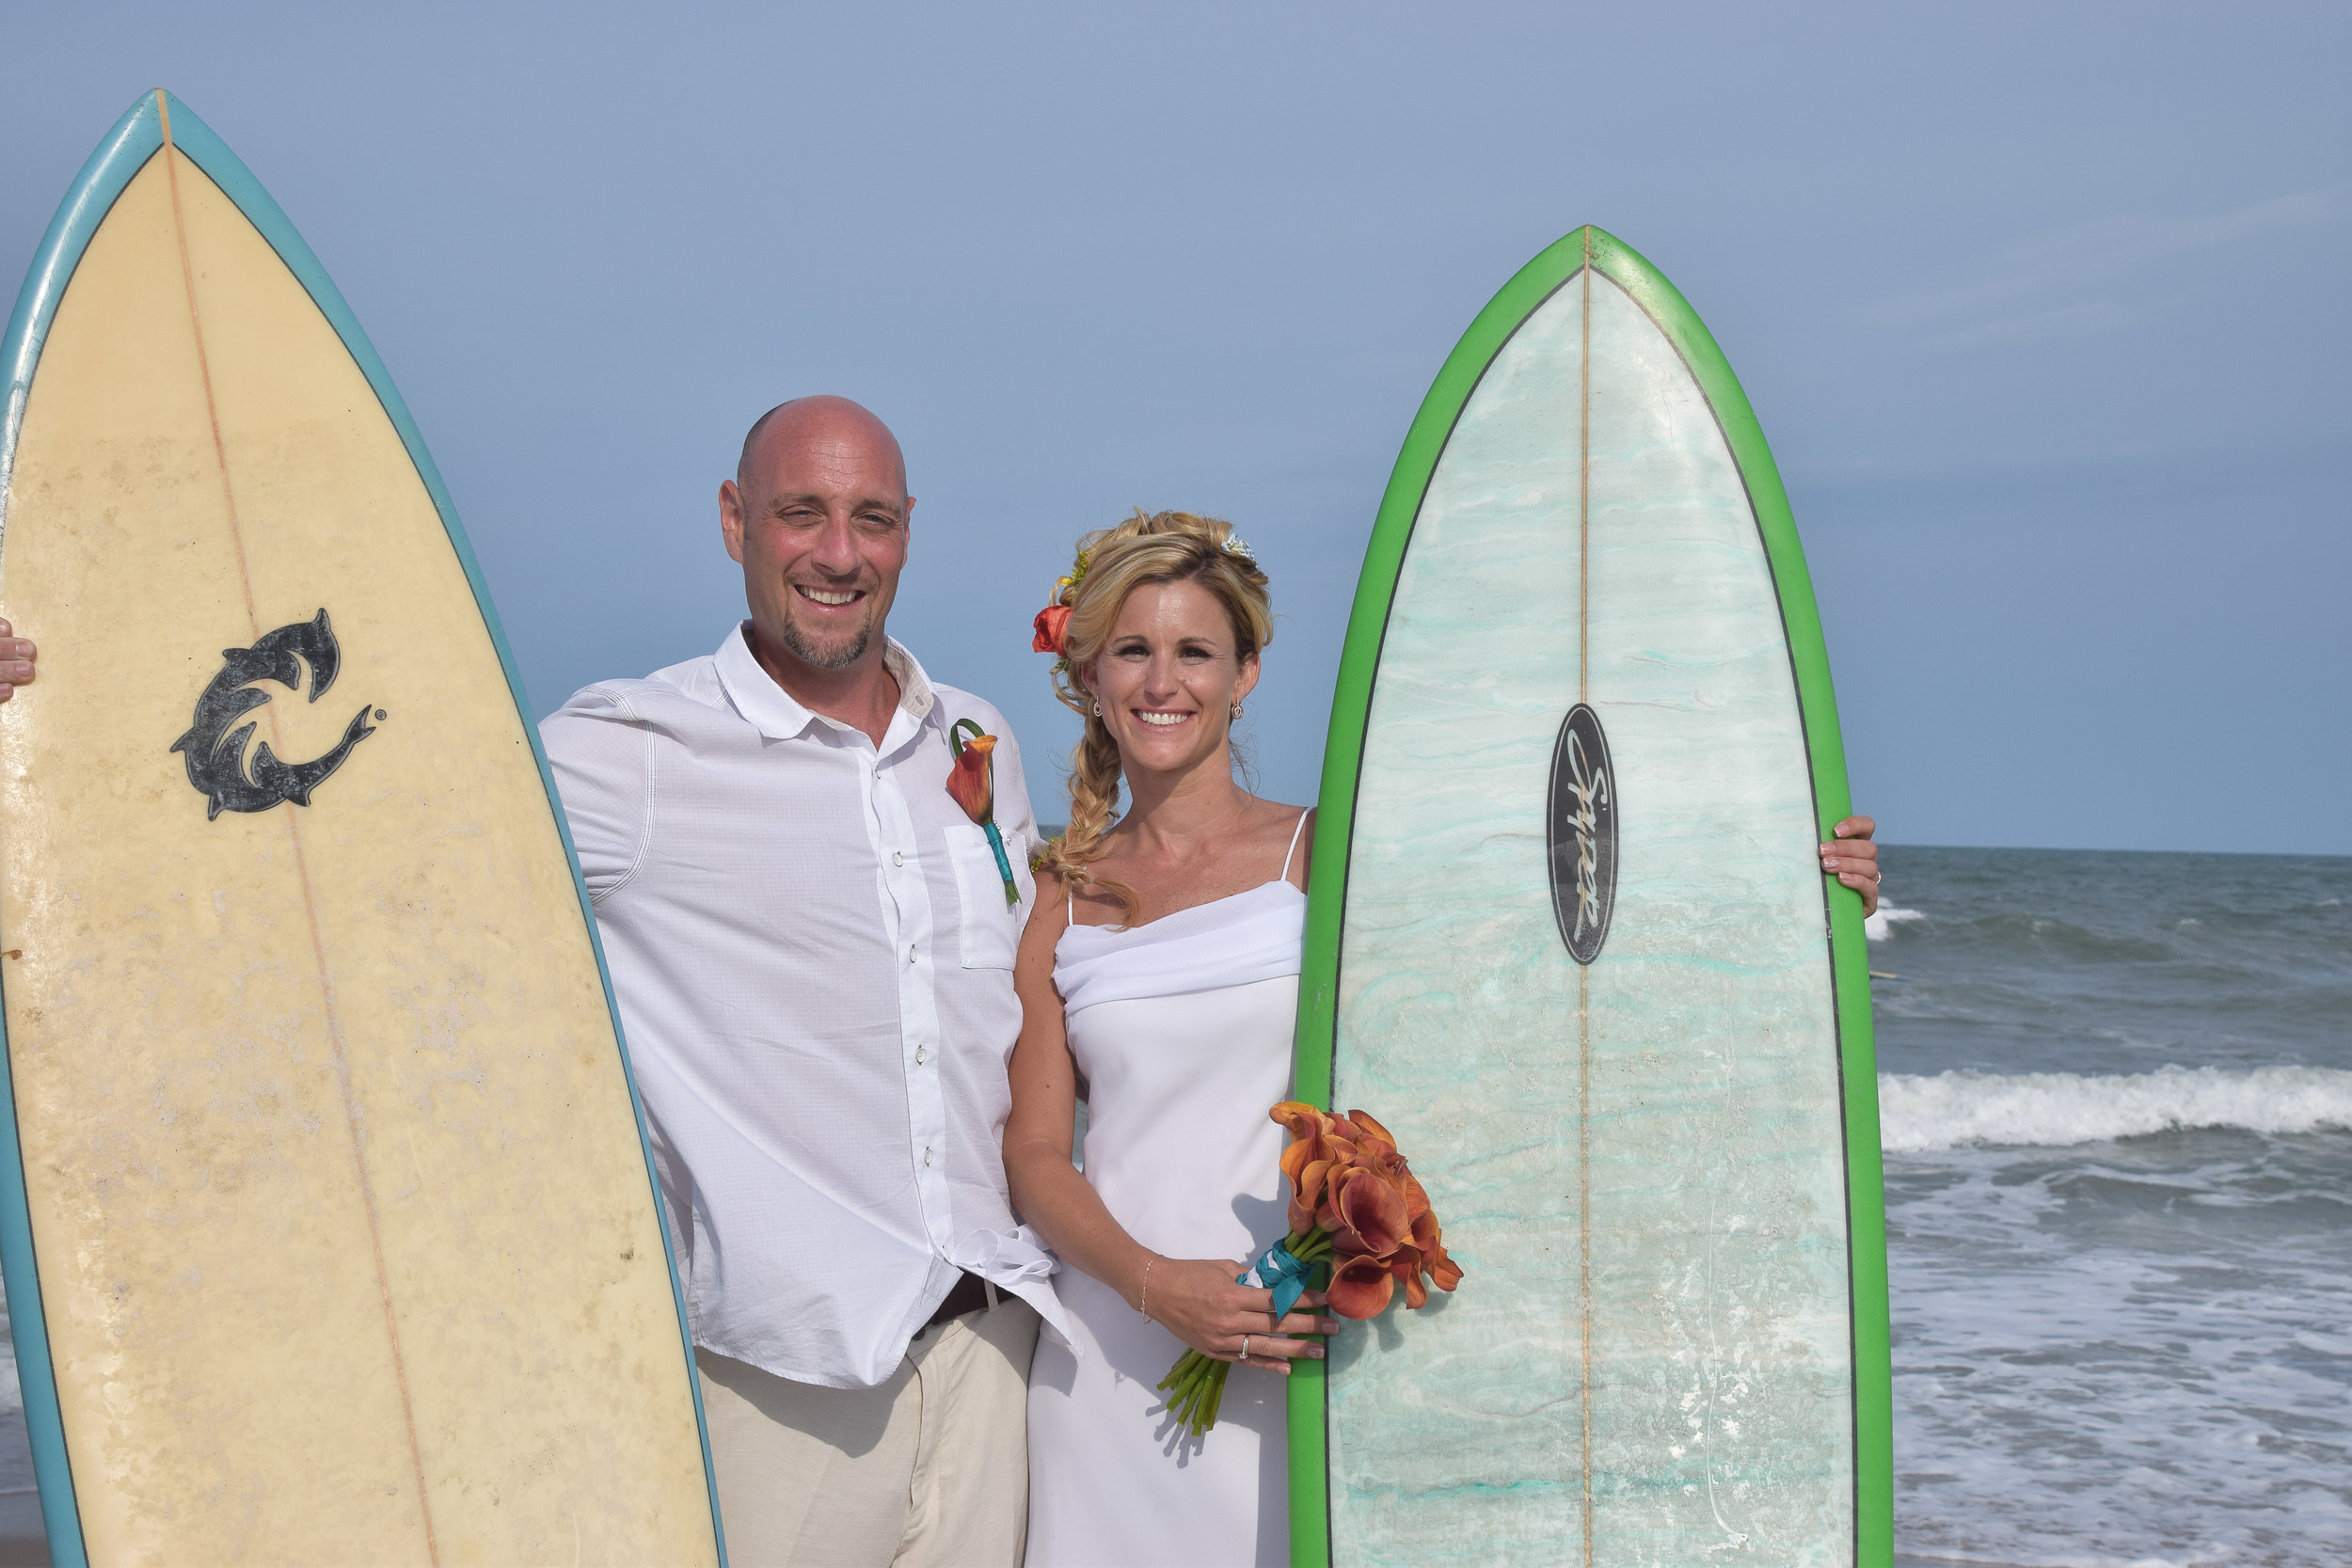 - Bride and groom posing with a couple of surf boards on Kure Beach, NC. We borrowed the boards from a couple of really nice random surfers to use as props. Ocean in the background. Billy Beach Photography.